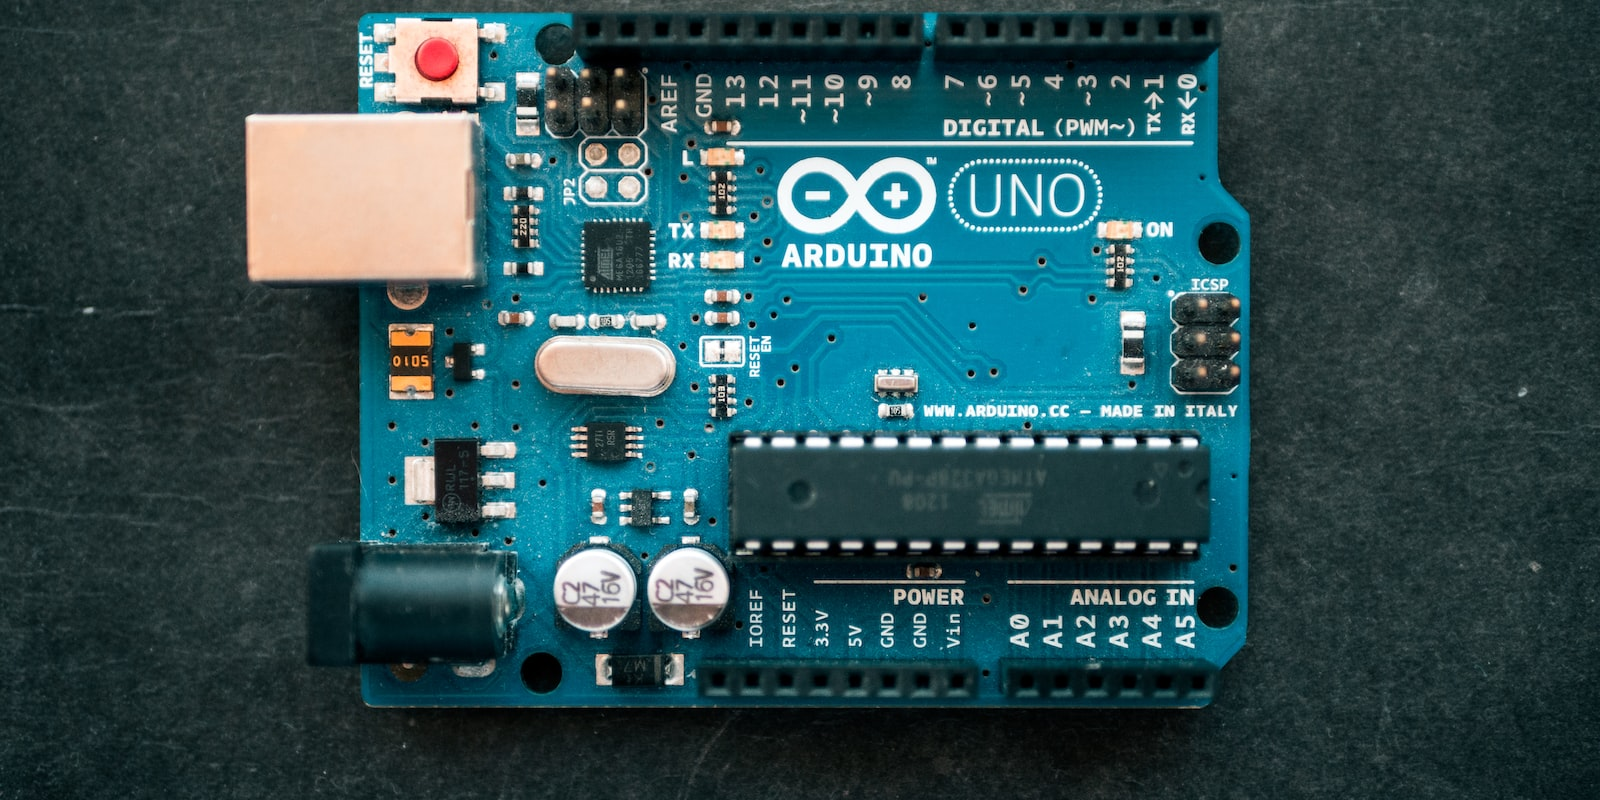 Workcamp on Arduino